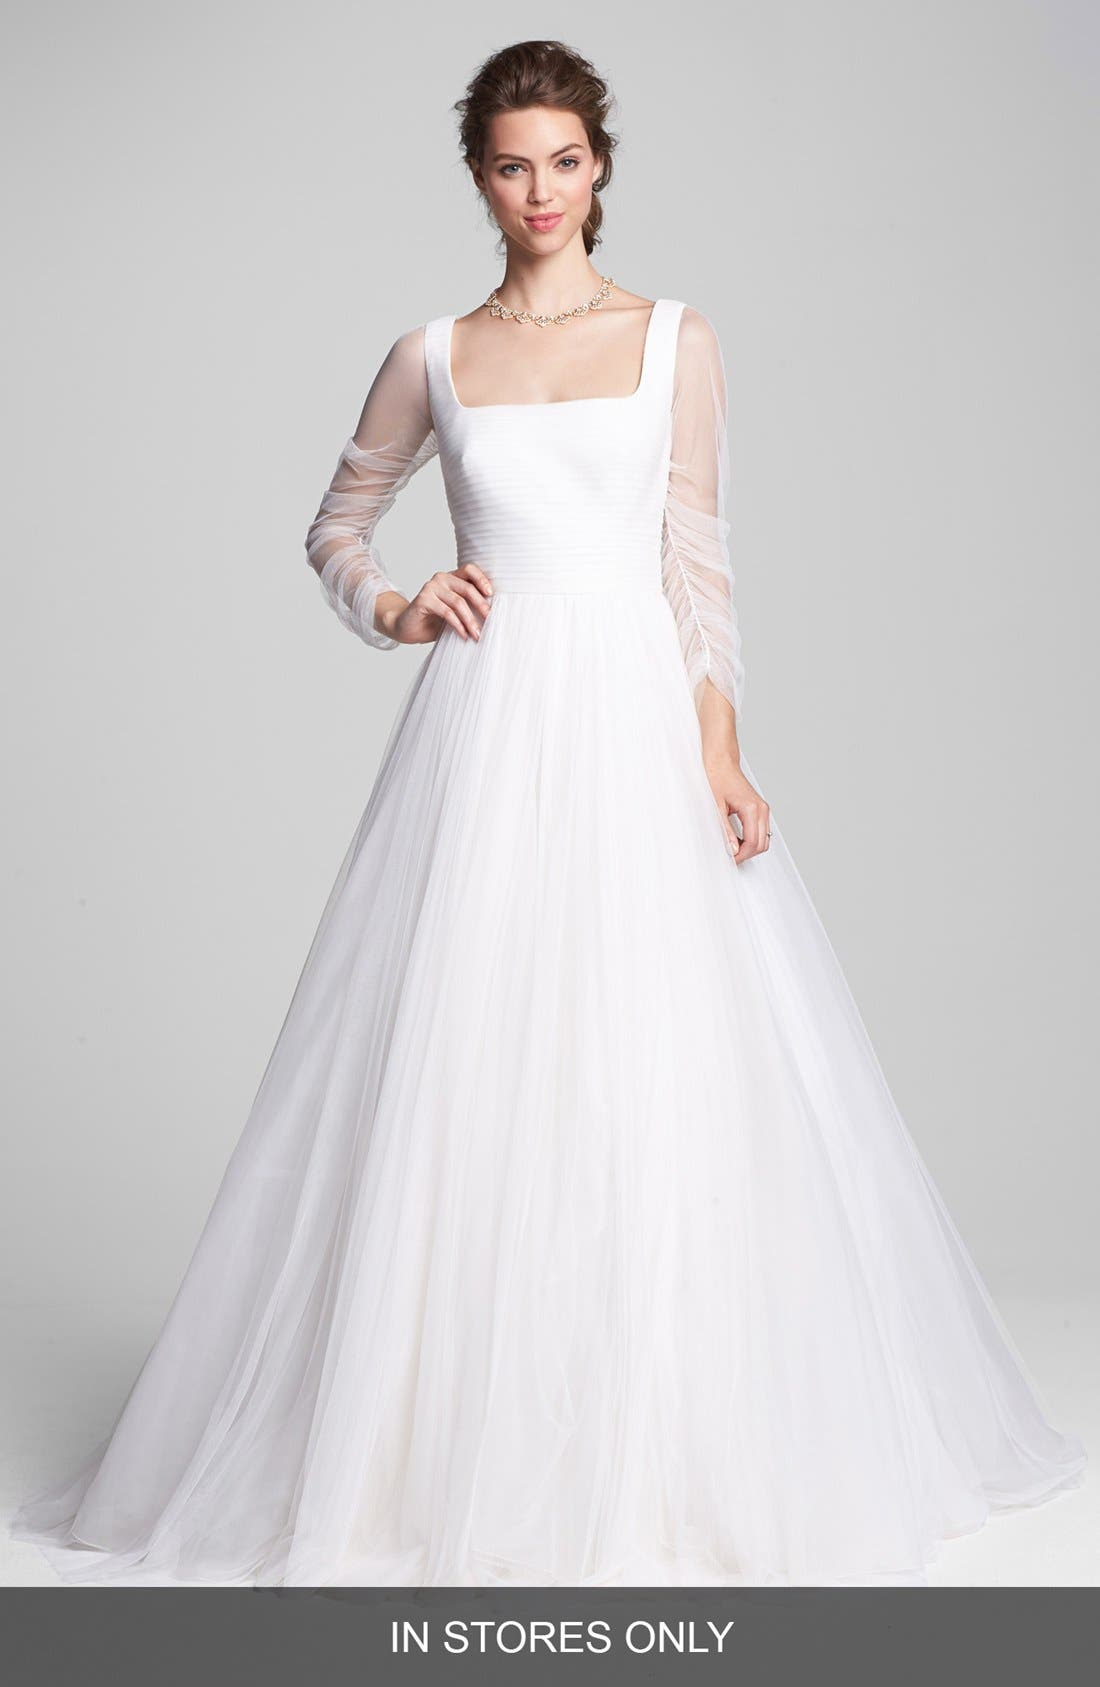 Main Image - Rosa Clara 'Belinda' Full Skirt Chiffon Dress (In Stores Only)